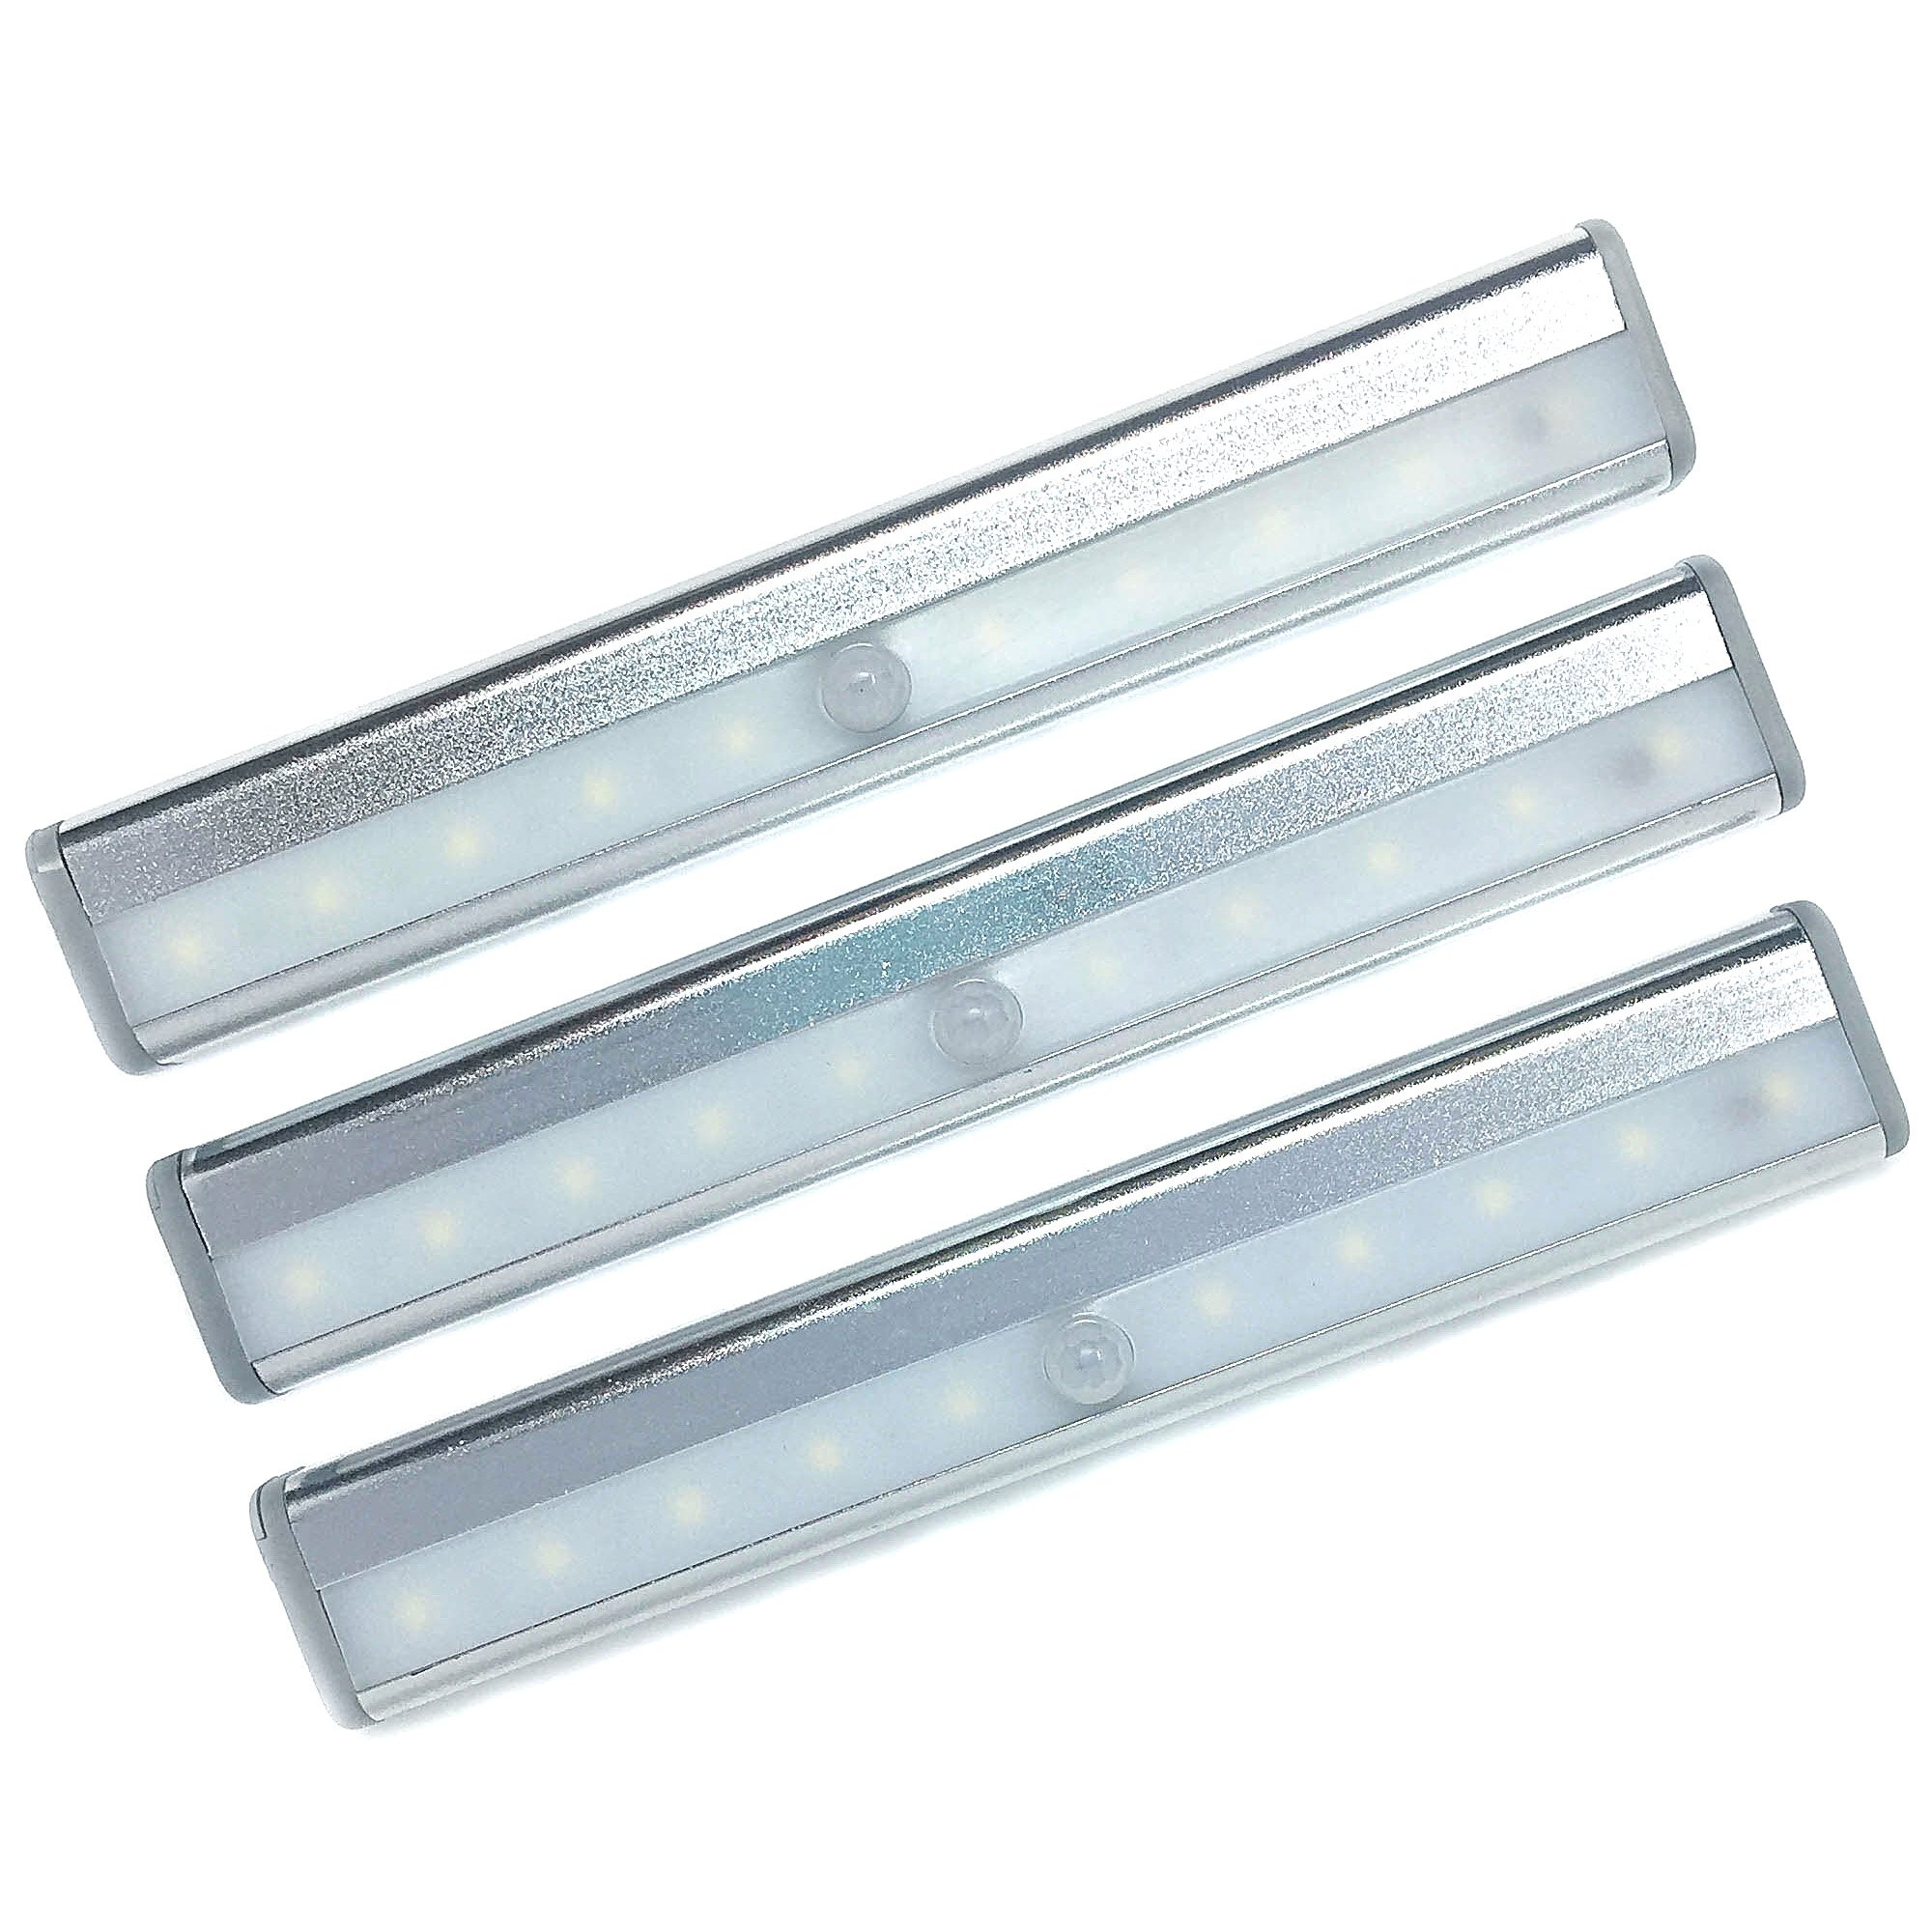 EpicSence 10 LED Motion Sensing Light- 3 Pack-DIY-Multi-Use Stick on any surface-Portable- Cordless Light Bar with Magnet Strip (Battery Operated)-Kids room/Cabinet/Closet/Stairs/Porch/RV/Tool Box